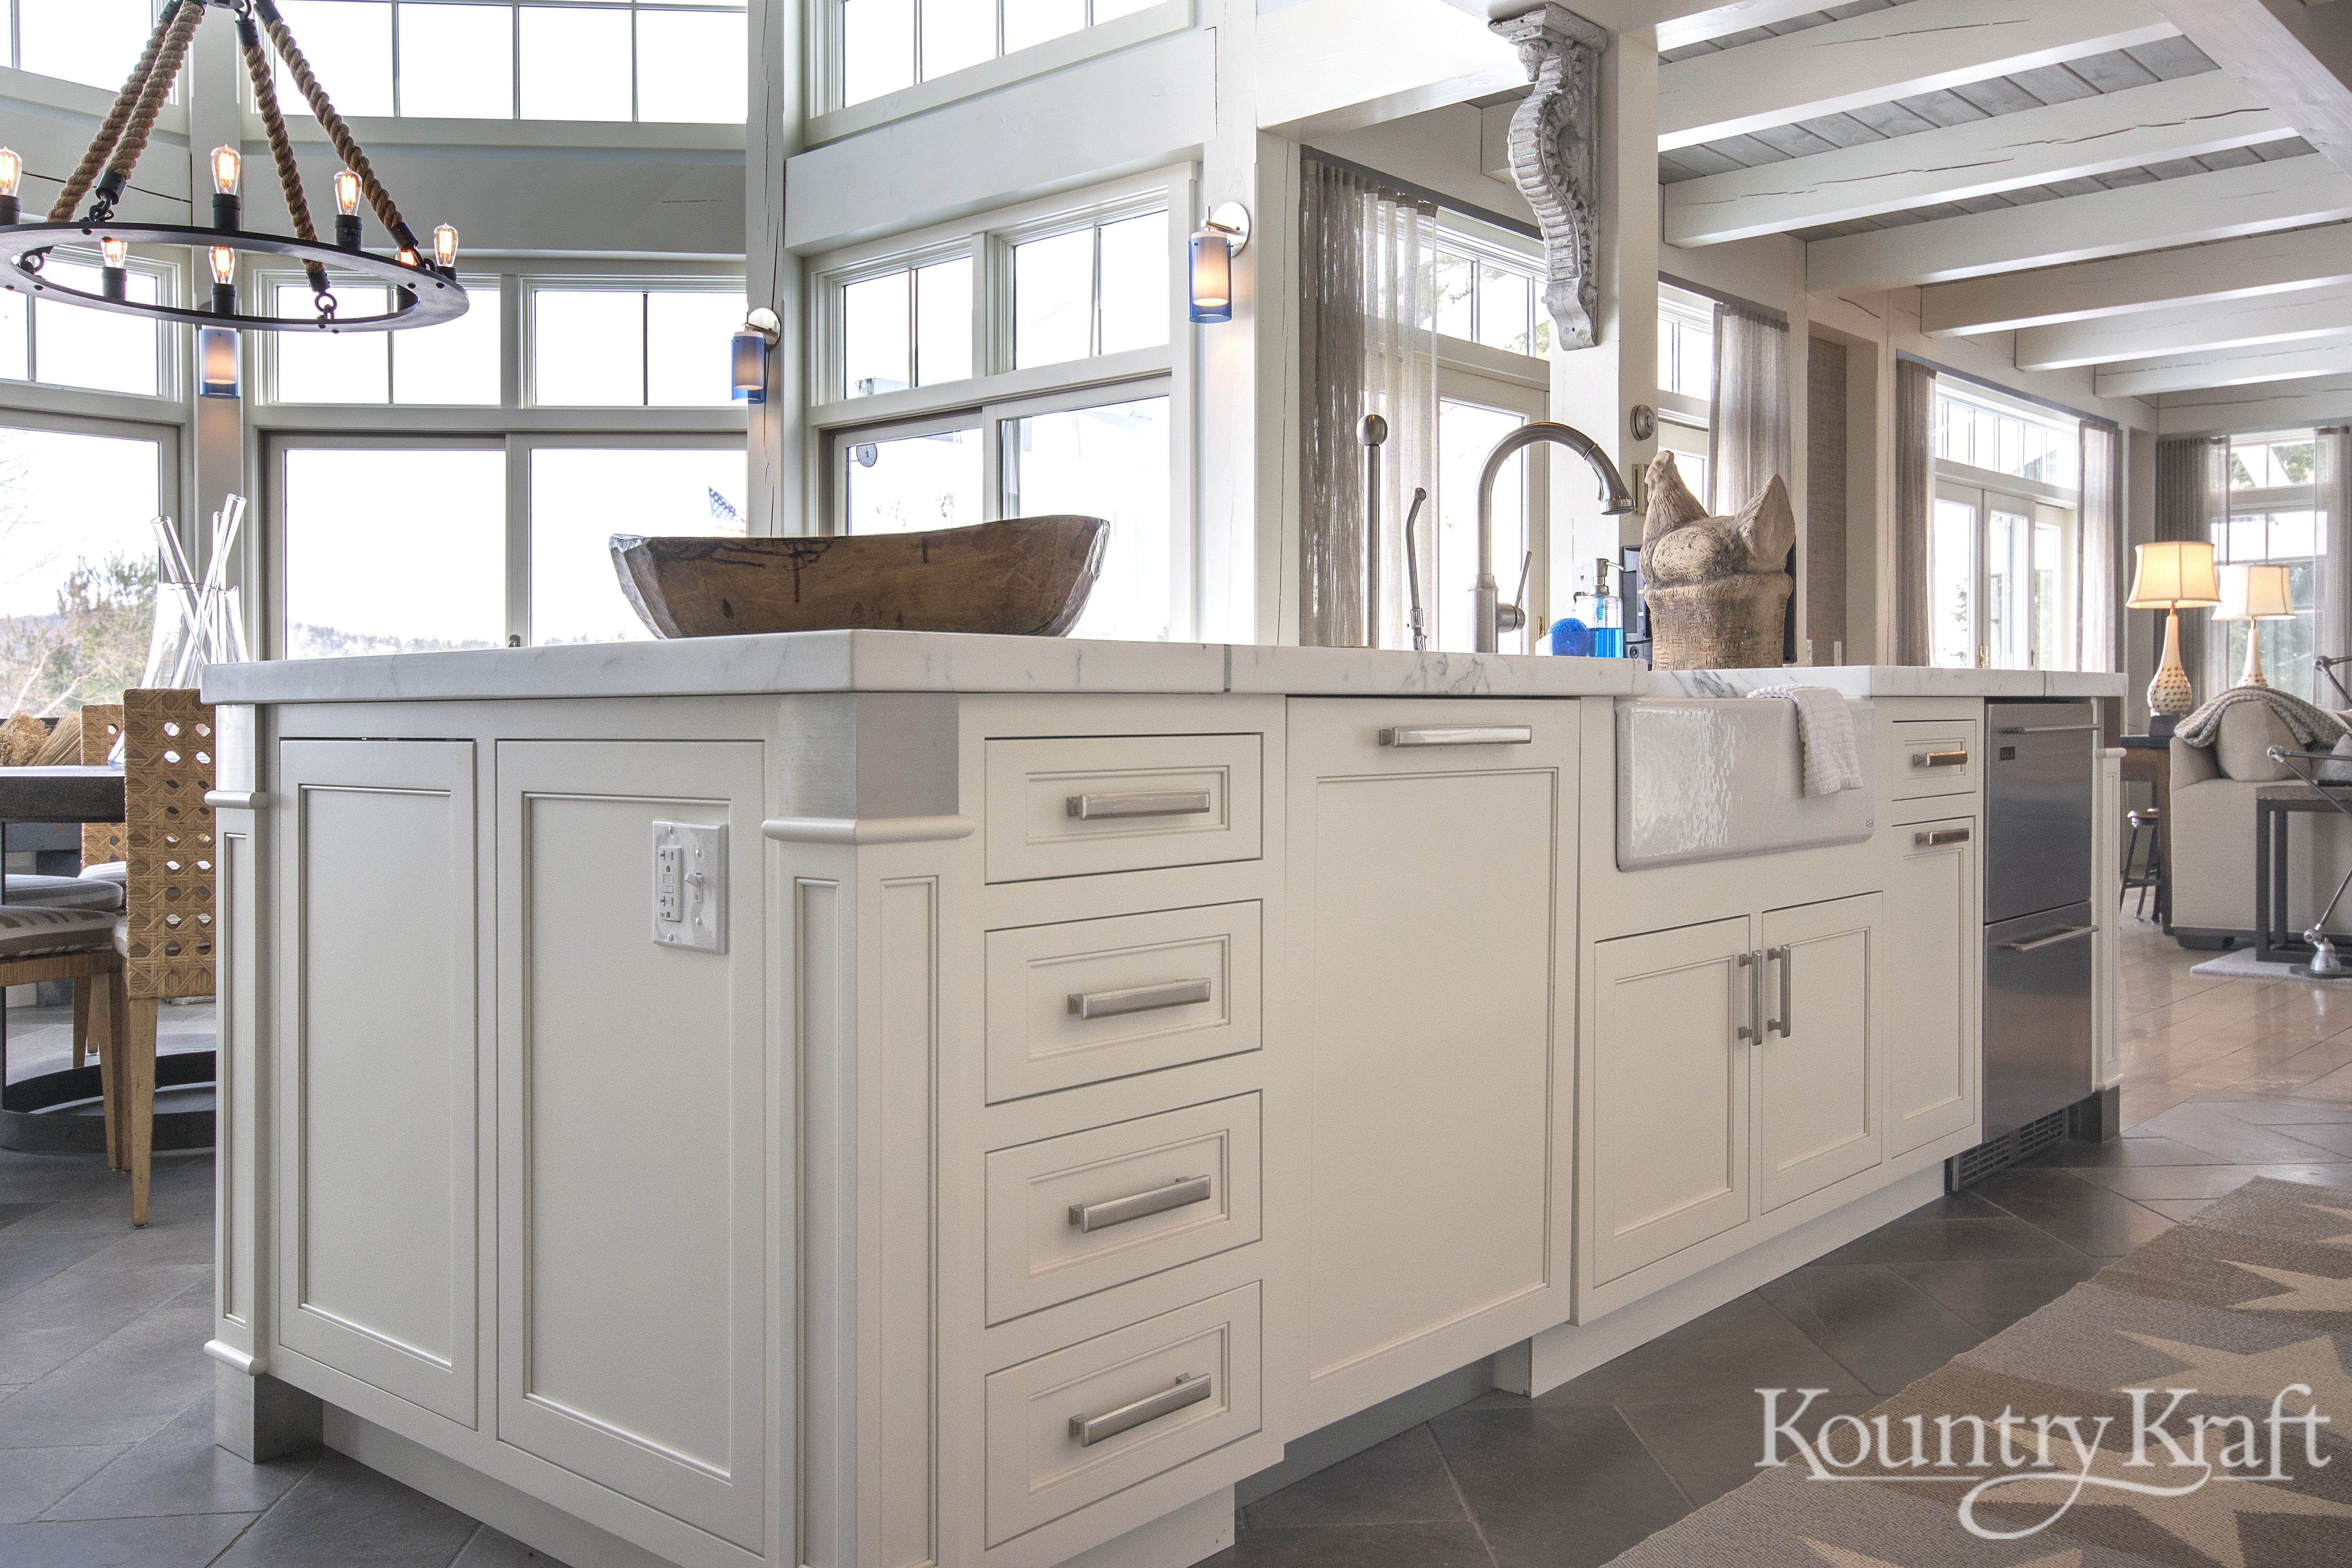 Custom Kitchen Cabinets Designed By Stacy Nawoj Of Pinnacle Kitchens In New Hollan Custom Kitchen Cabinets Design Custom Kitchen Island Custom Kitchen Cabinets